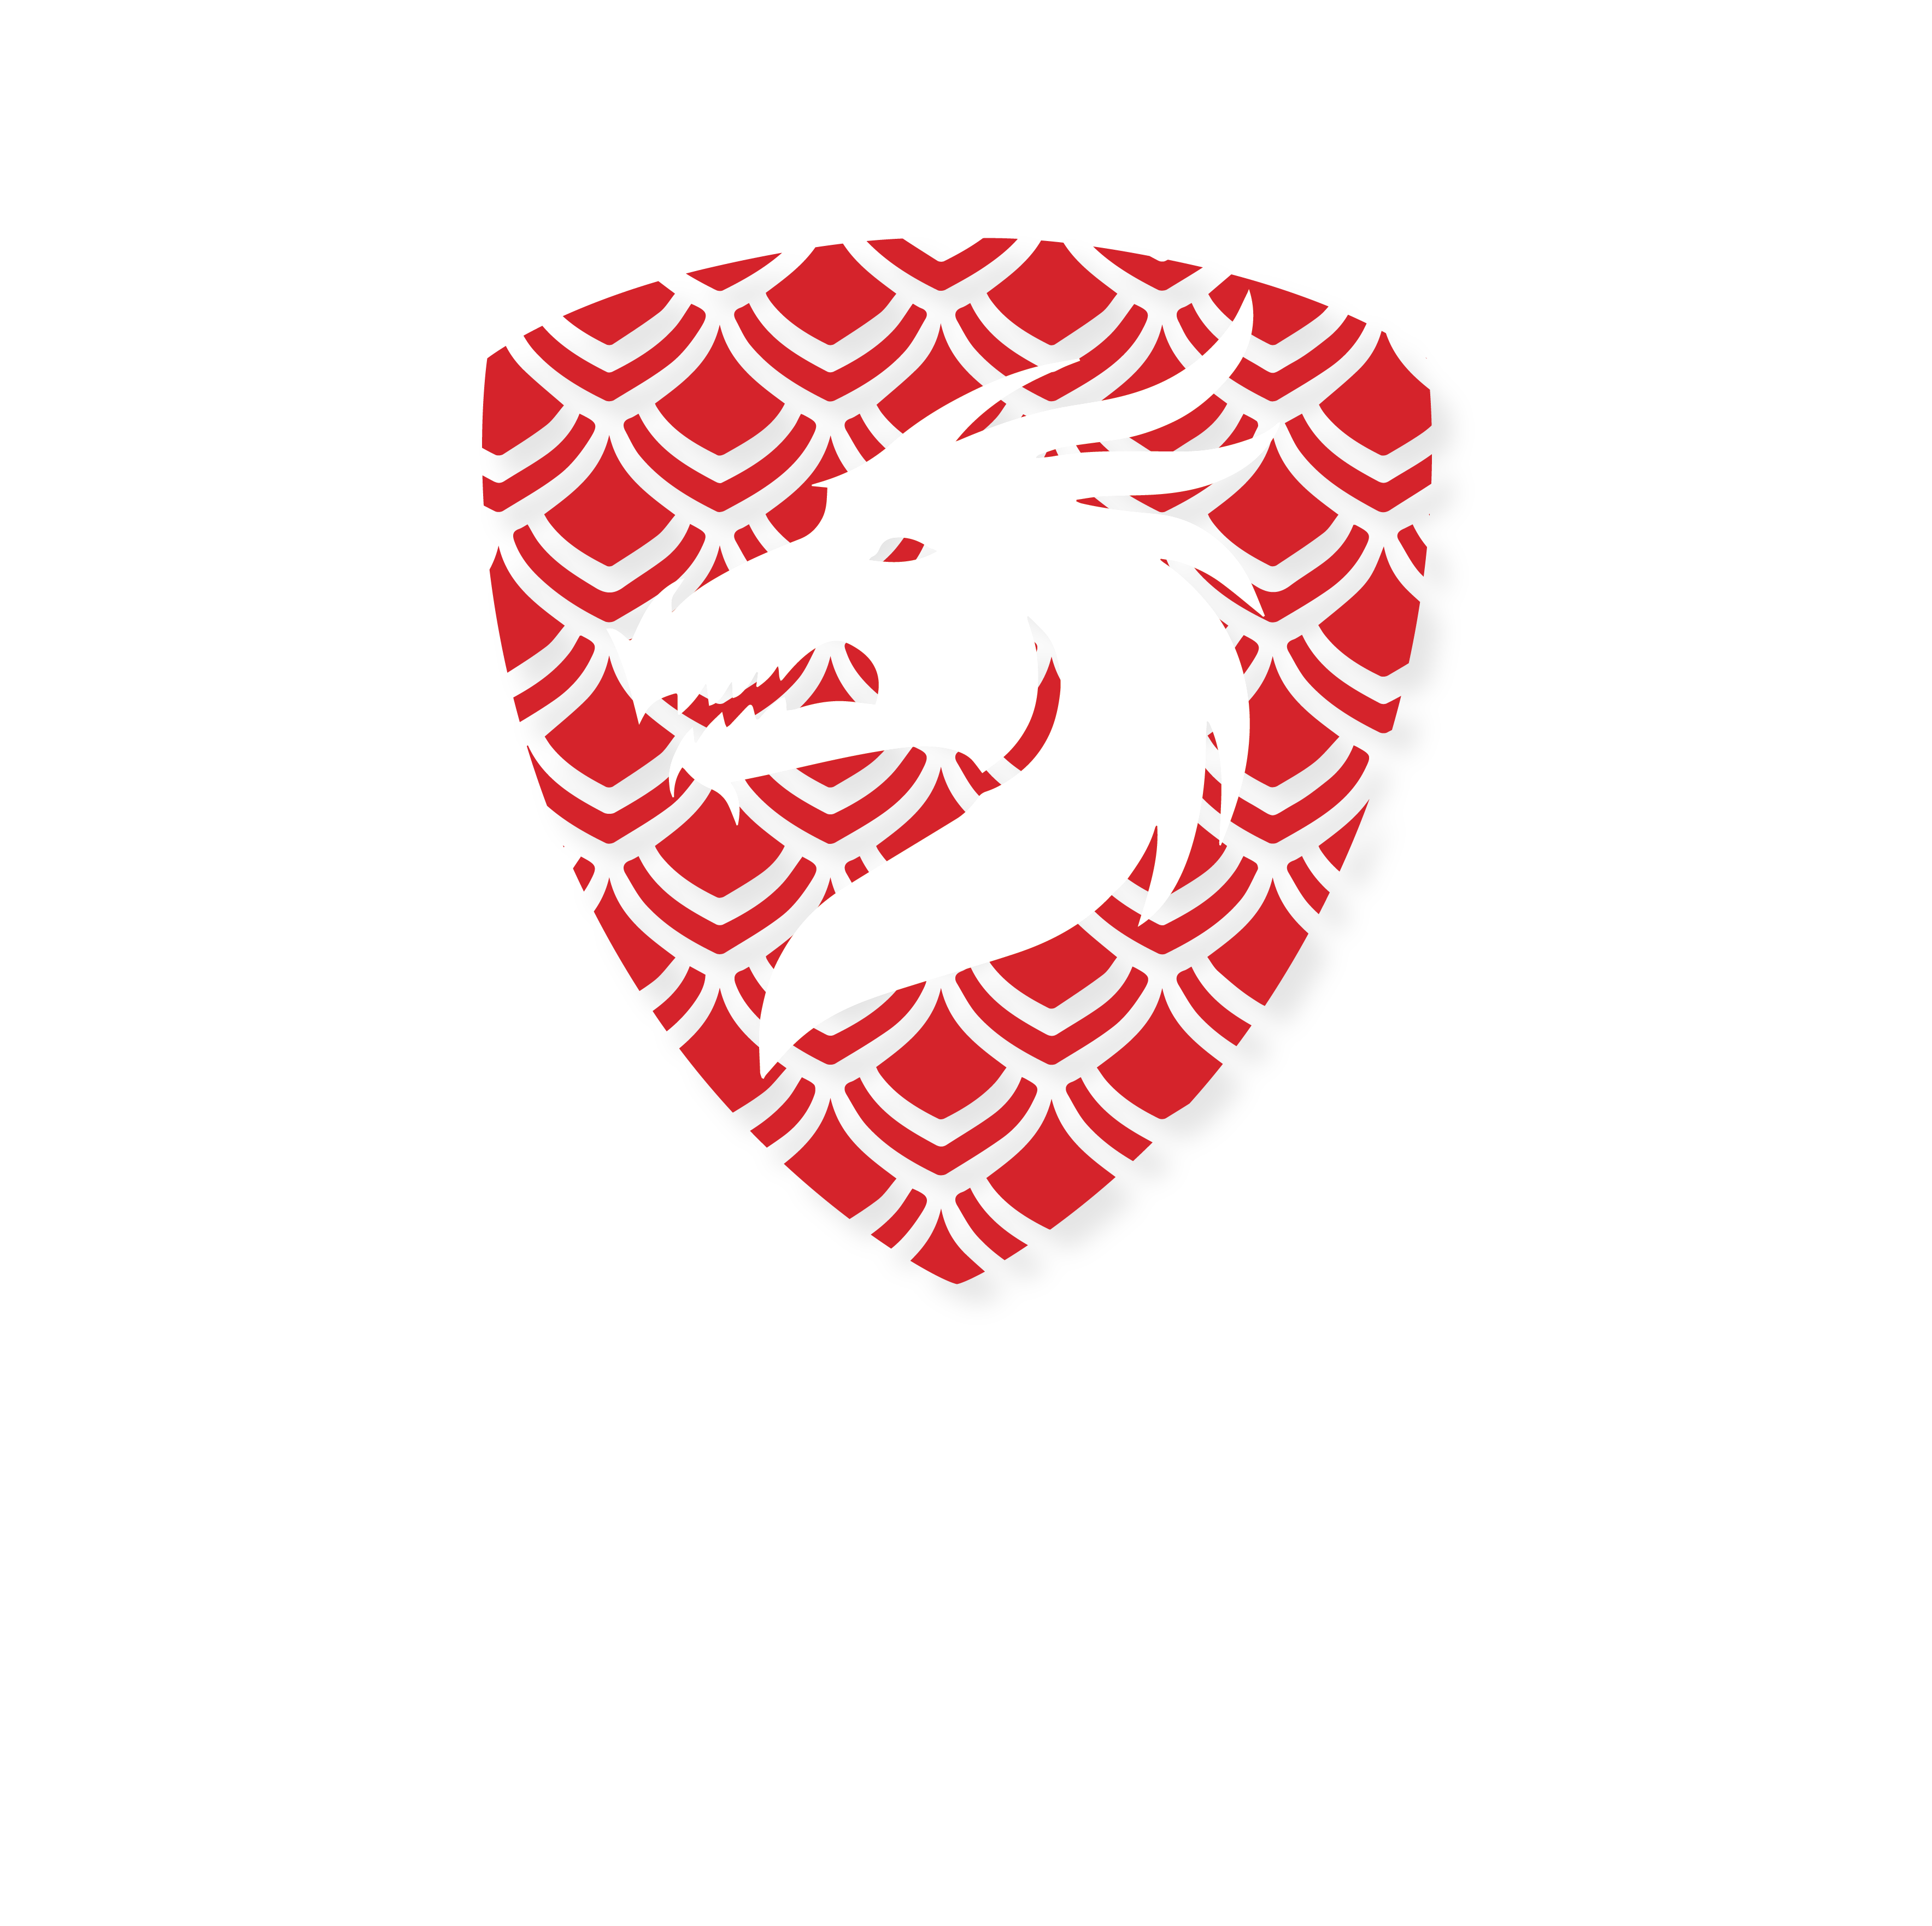 NWN PRODUCT LINE